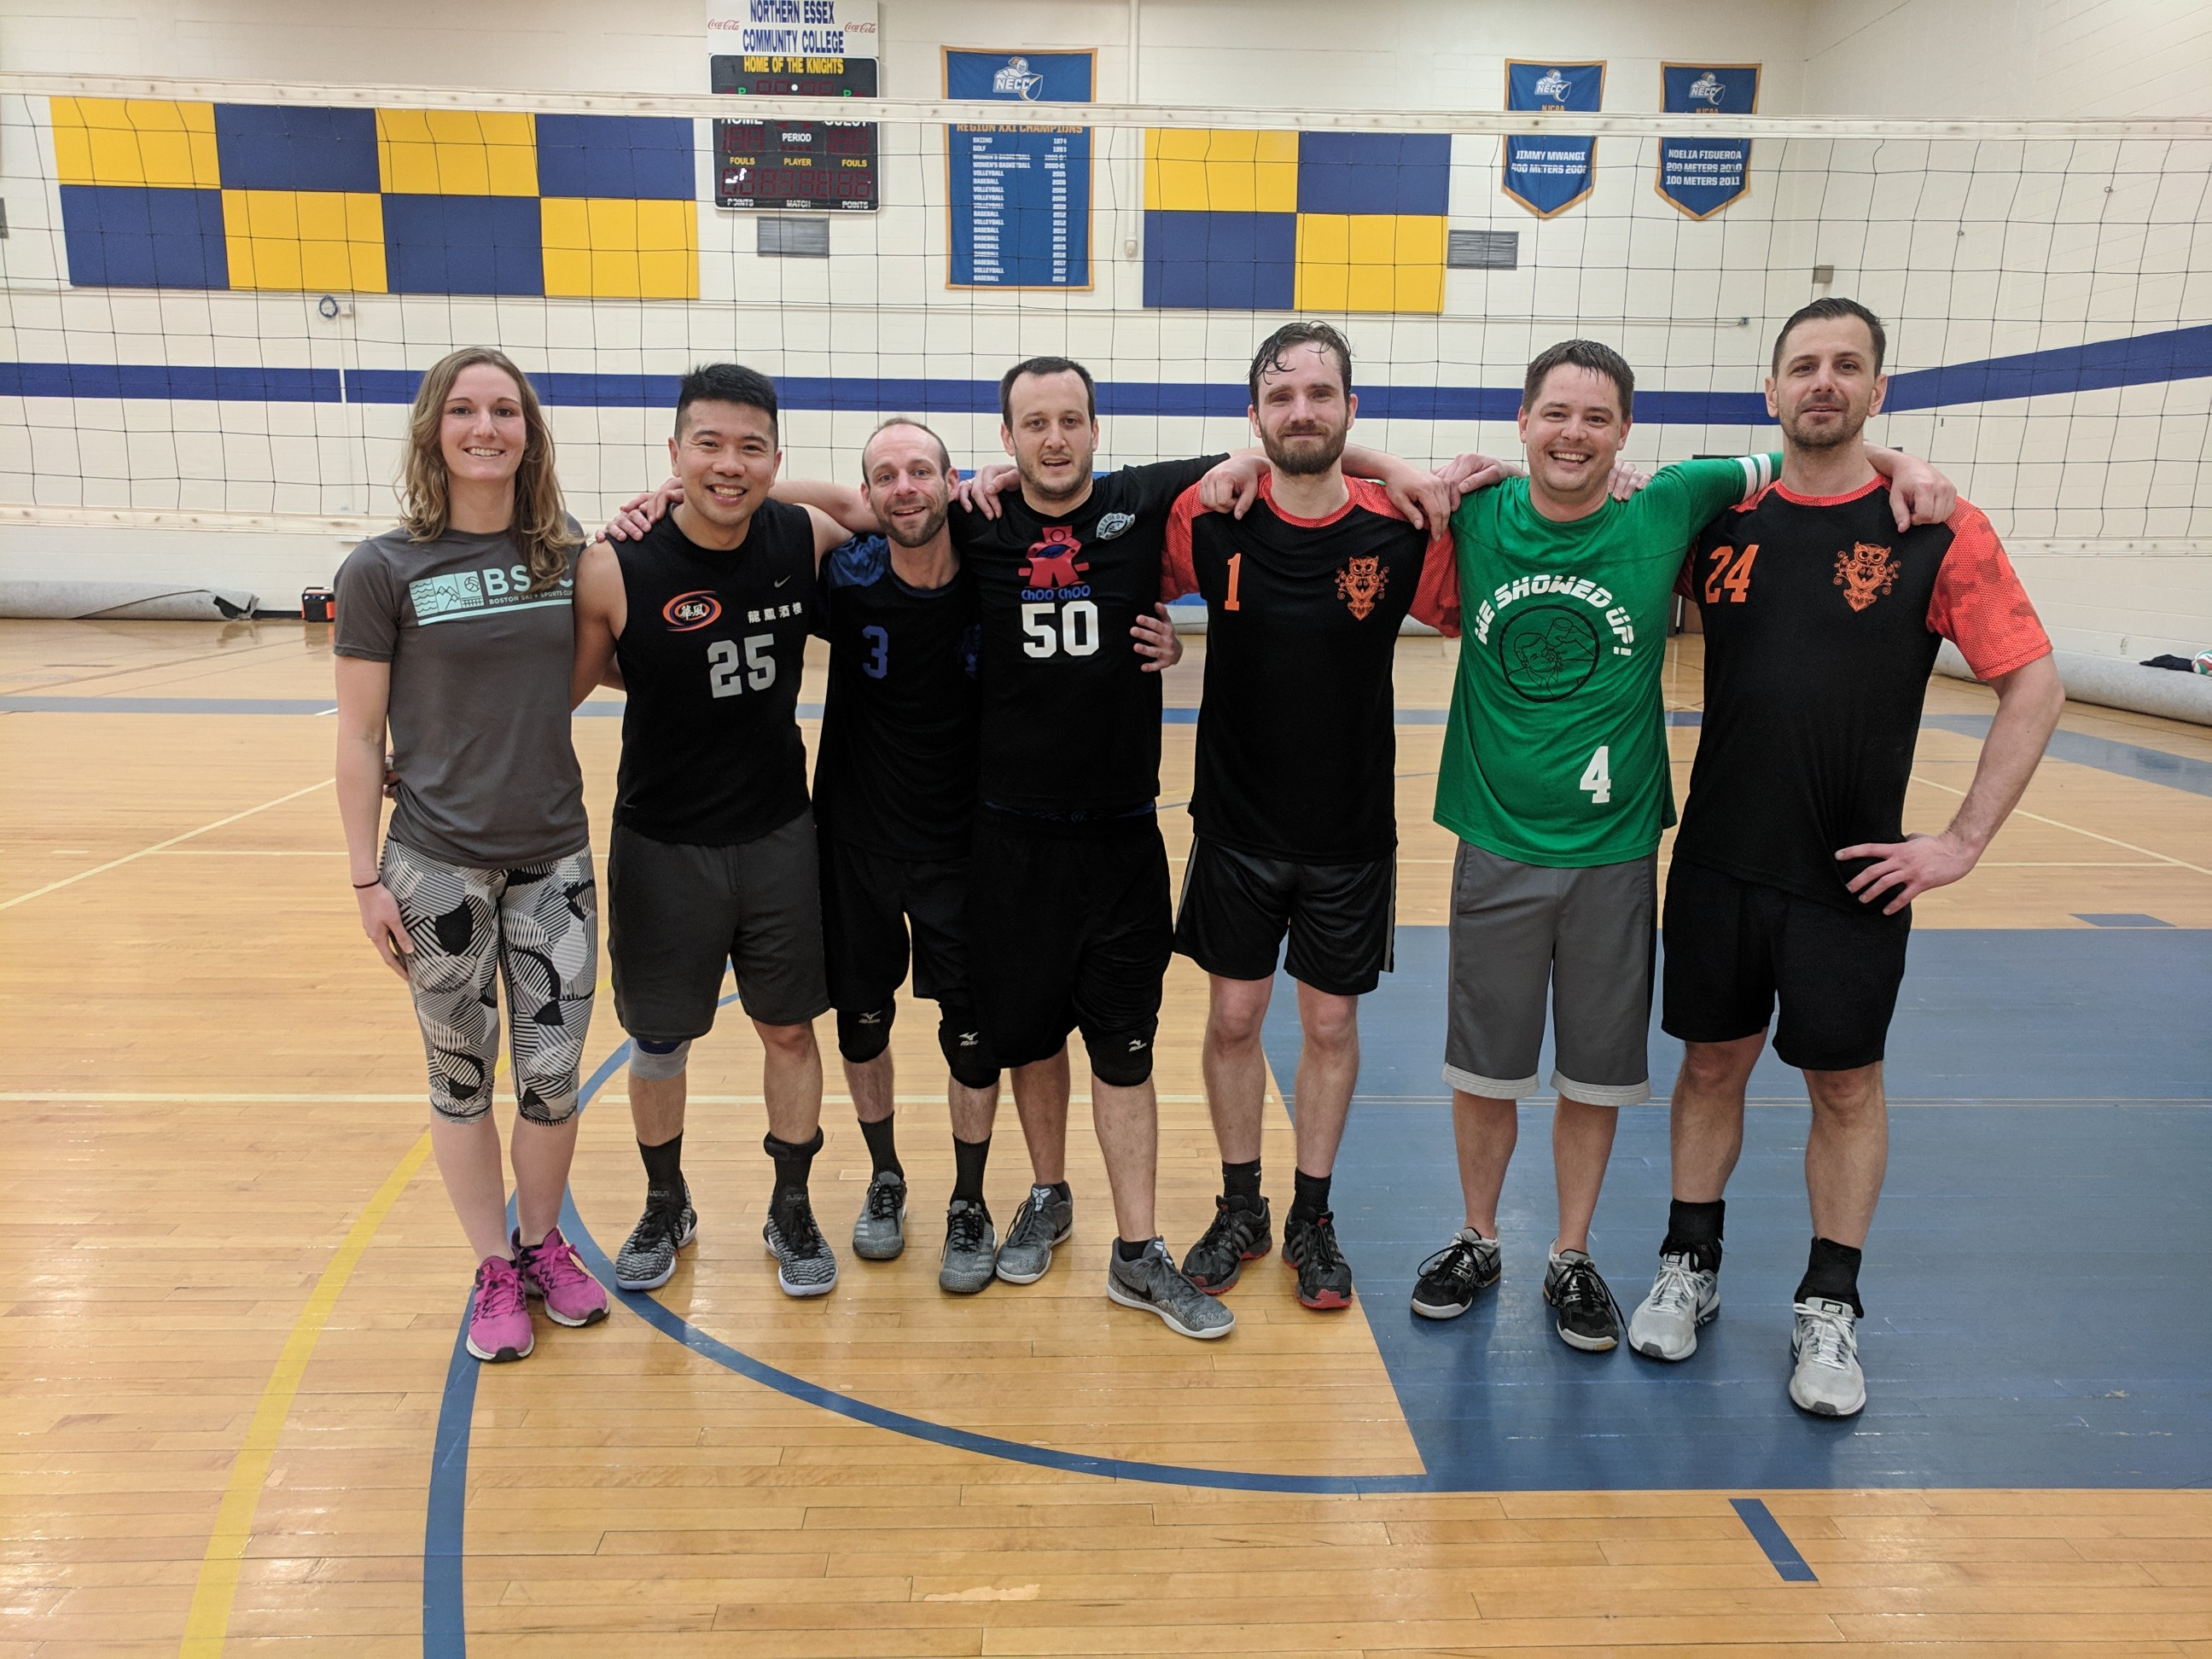 4/13/2019 MC Champions - We Waffled Up